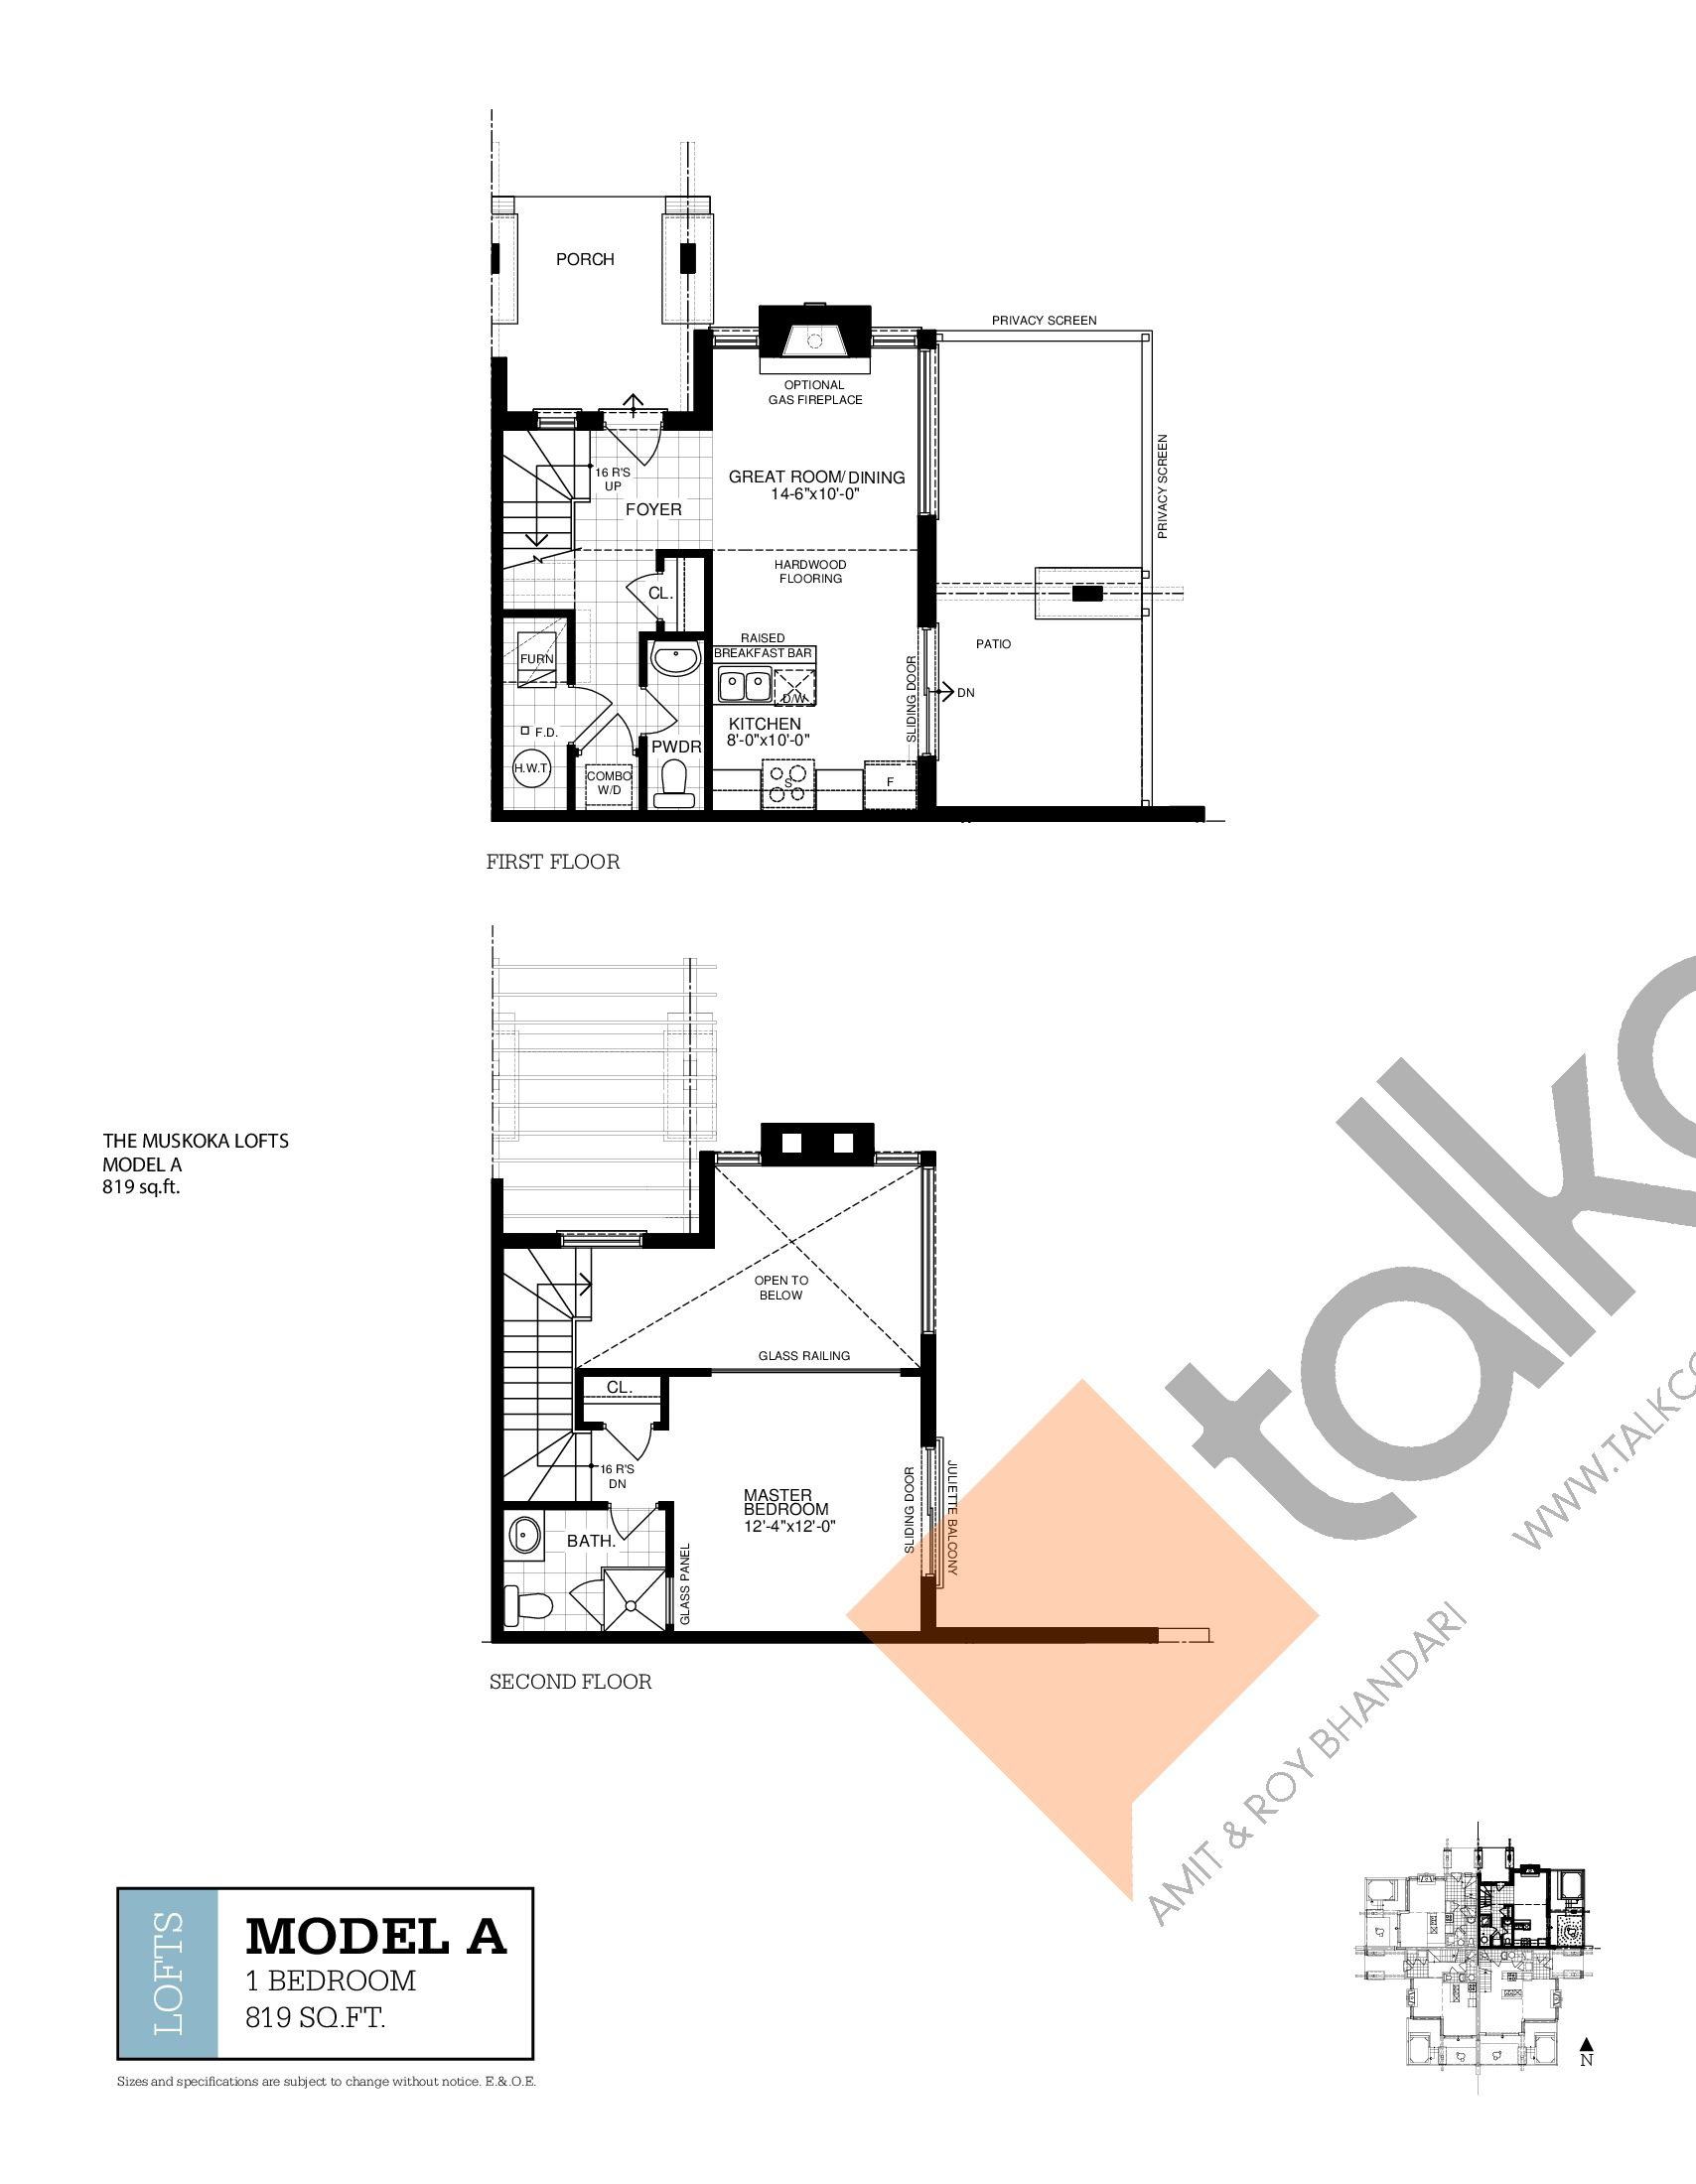 Loft A Floor Plan at Muskoka Bay Resort - 819 sq.ft